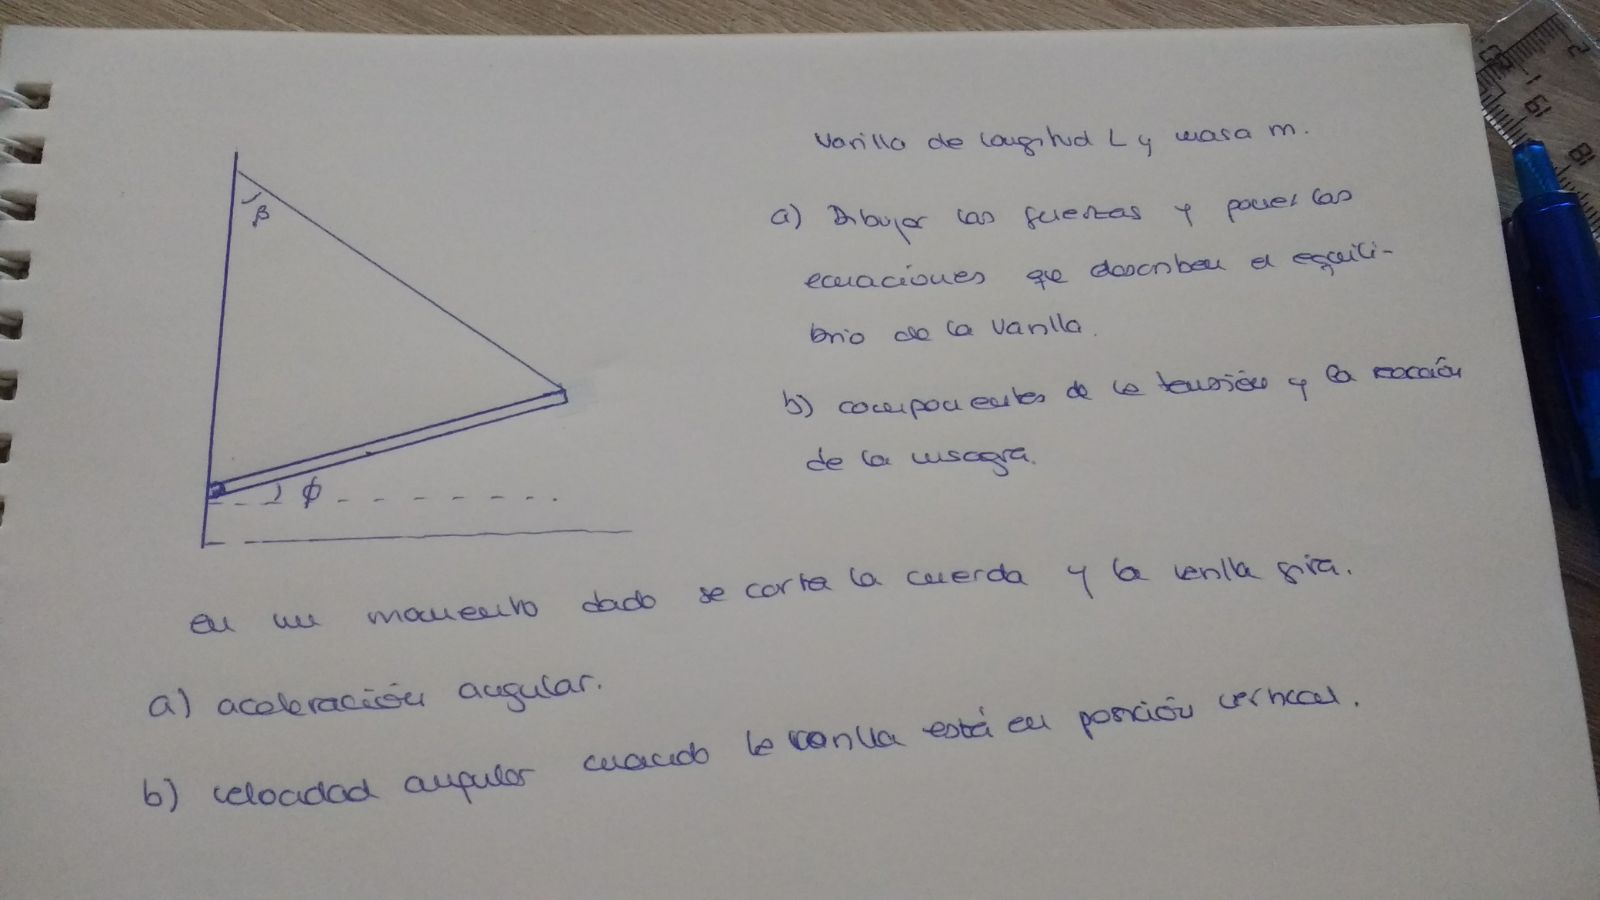 WhatsApp Image 2017-06-25 at 09.29.28.jpeg